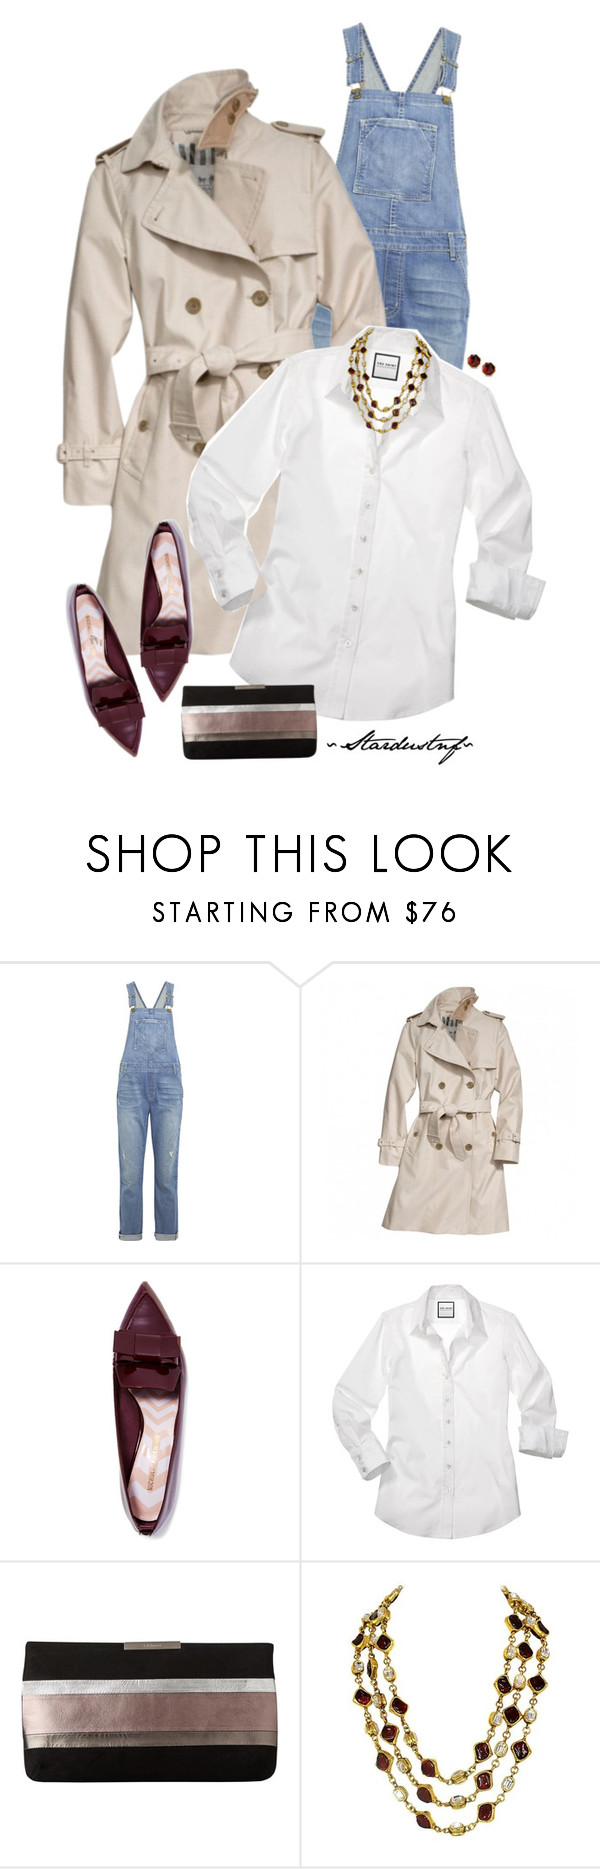 """""""White Shirt ~ That's All I Know (Outfit Only)"""" by stardustnf ❤ liked on Polyvore featuring Current/Elliott, Nicholas Kirkwood, L.K.Bennett, Chanel and David Yurman"""